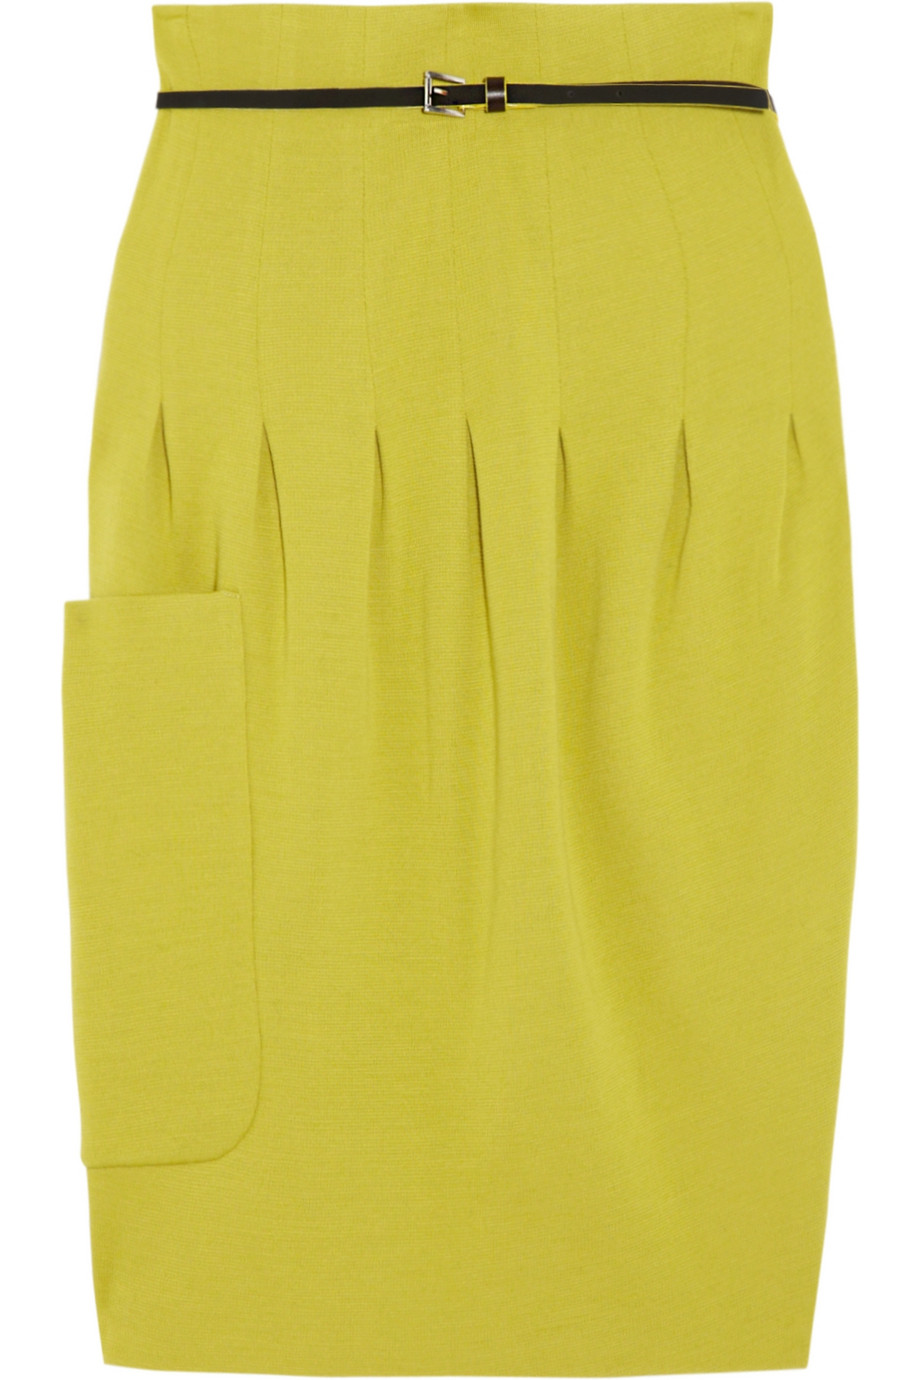 m missoni pleated wool blend skirt in yellow chartreuse